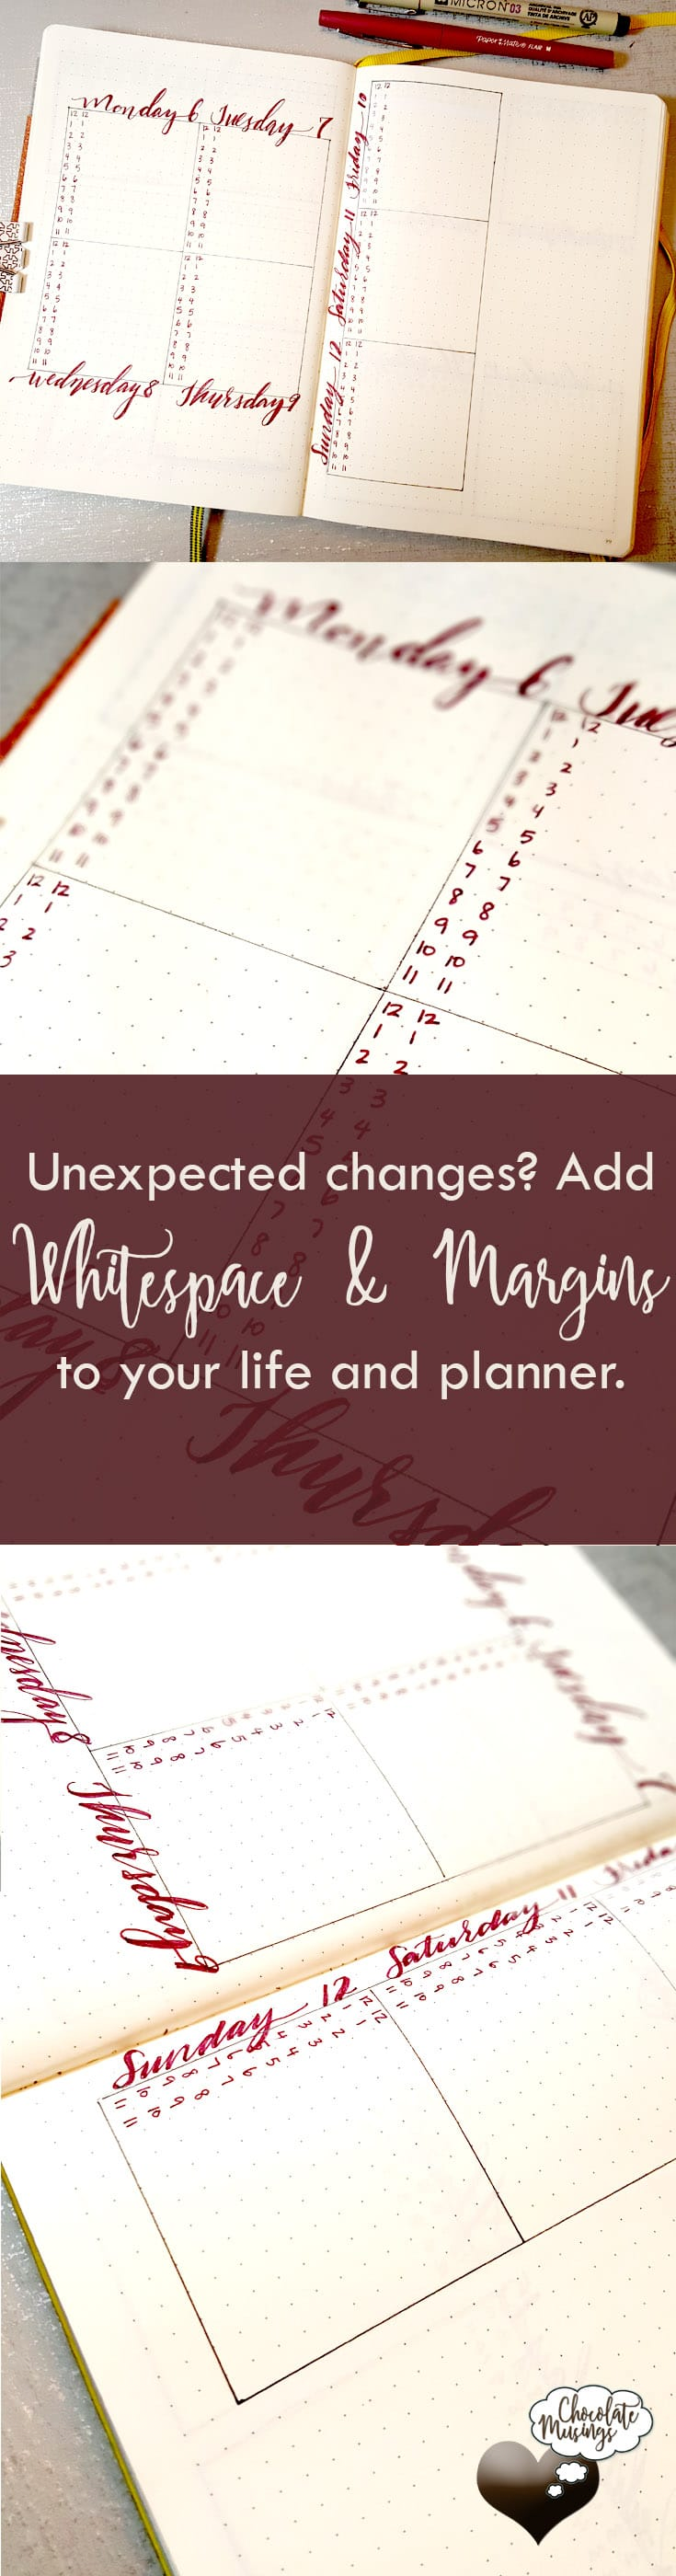 Add margin and whitespace to your planner and your life